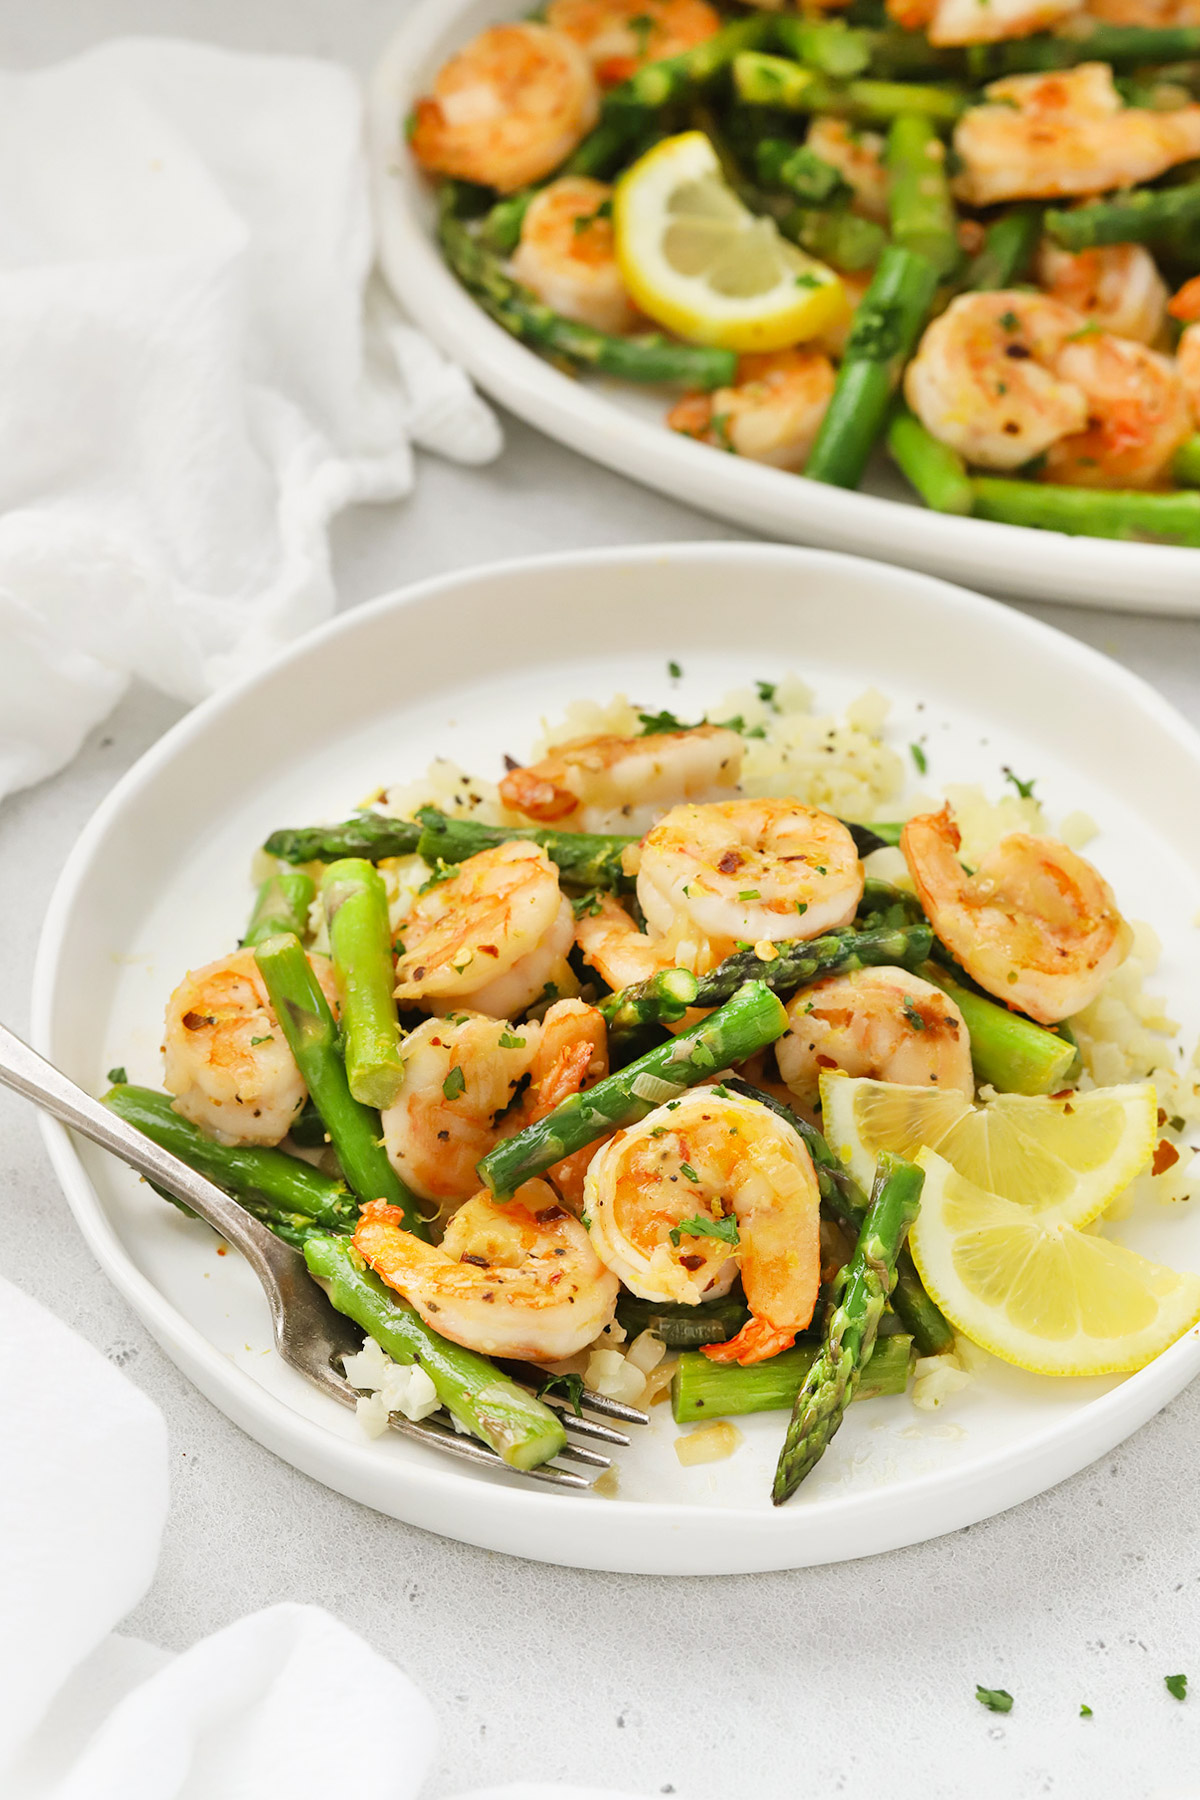 Front view of a plate of lemon shrimp and asparagus with cauliflower rice